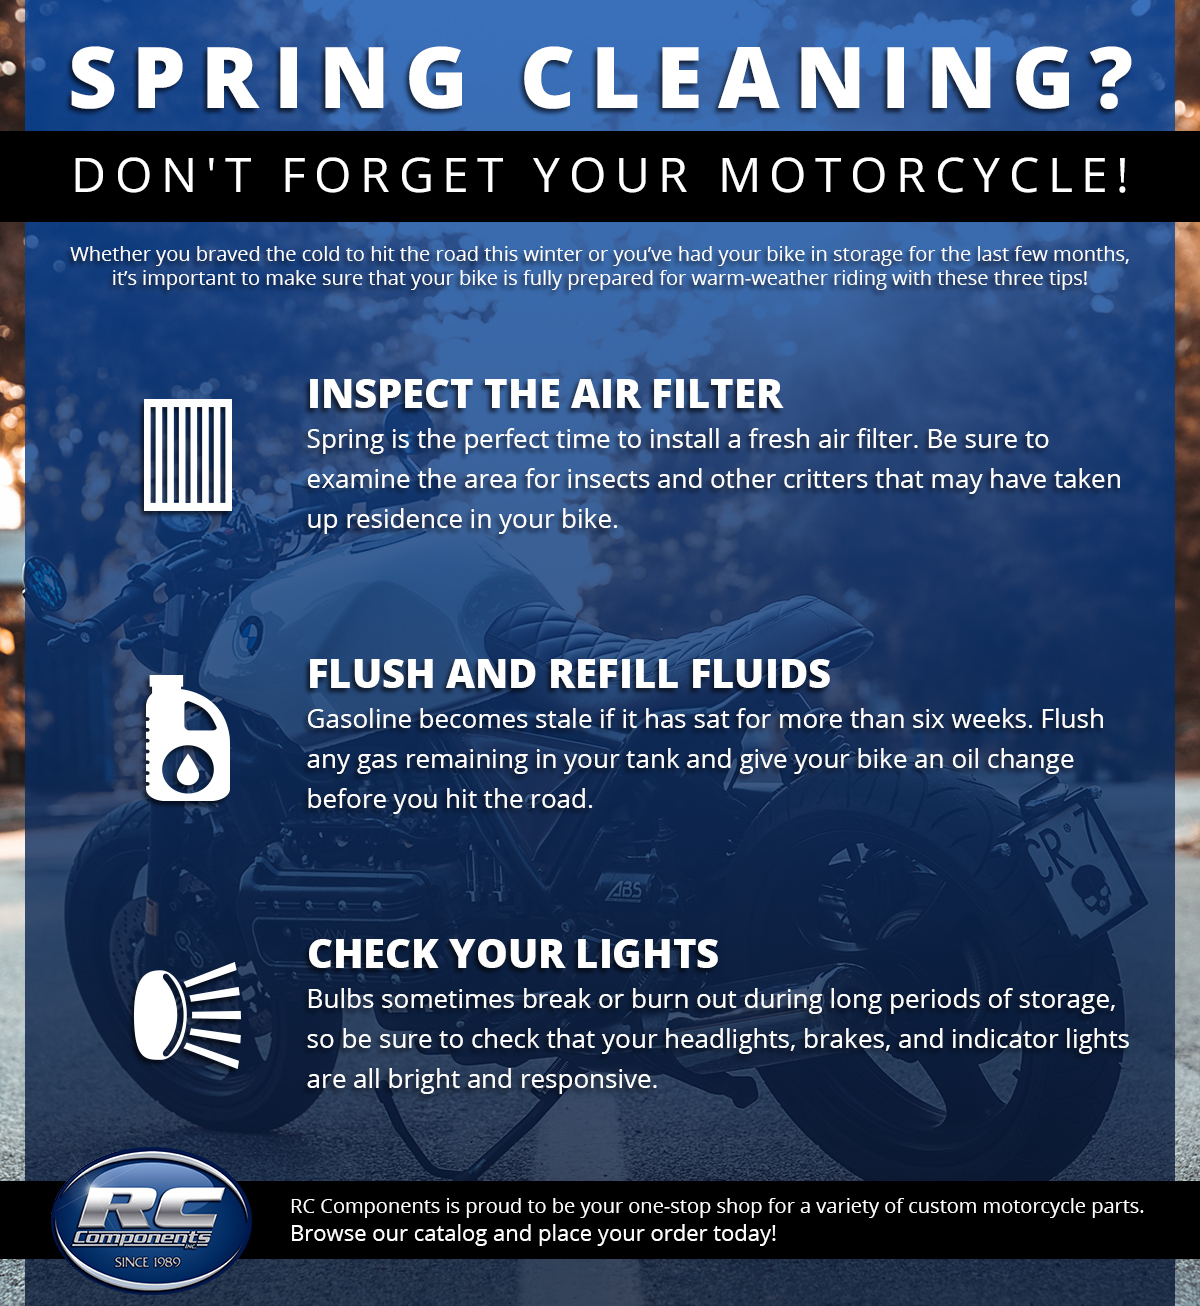 Spring Cleaning? Don't Forget Your Motorcycle! - RC Components